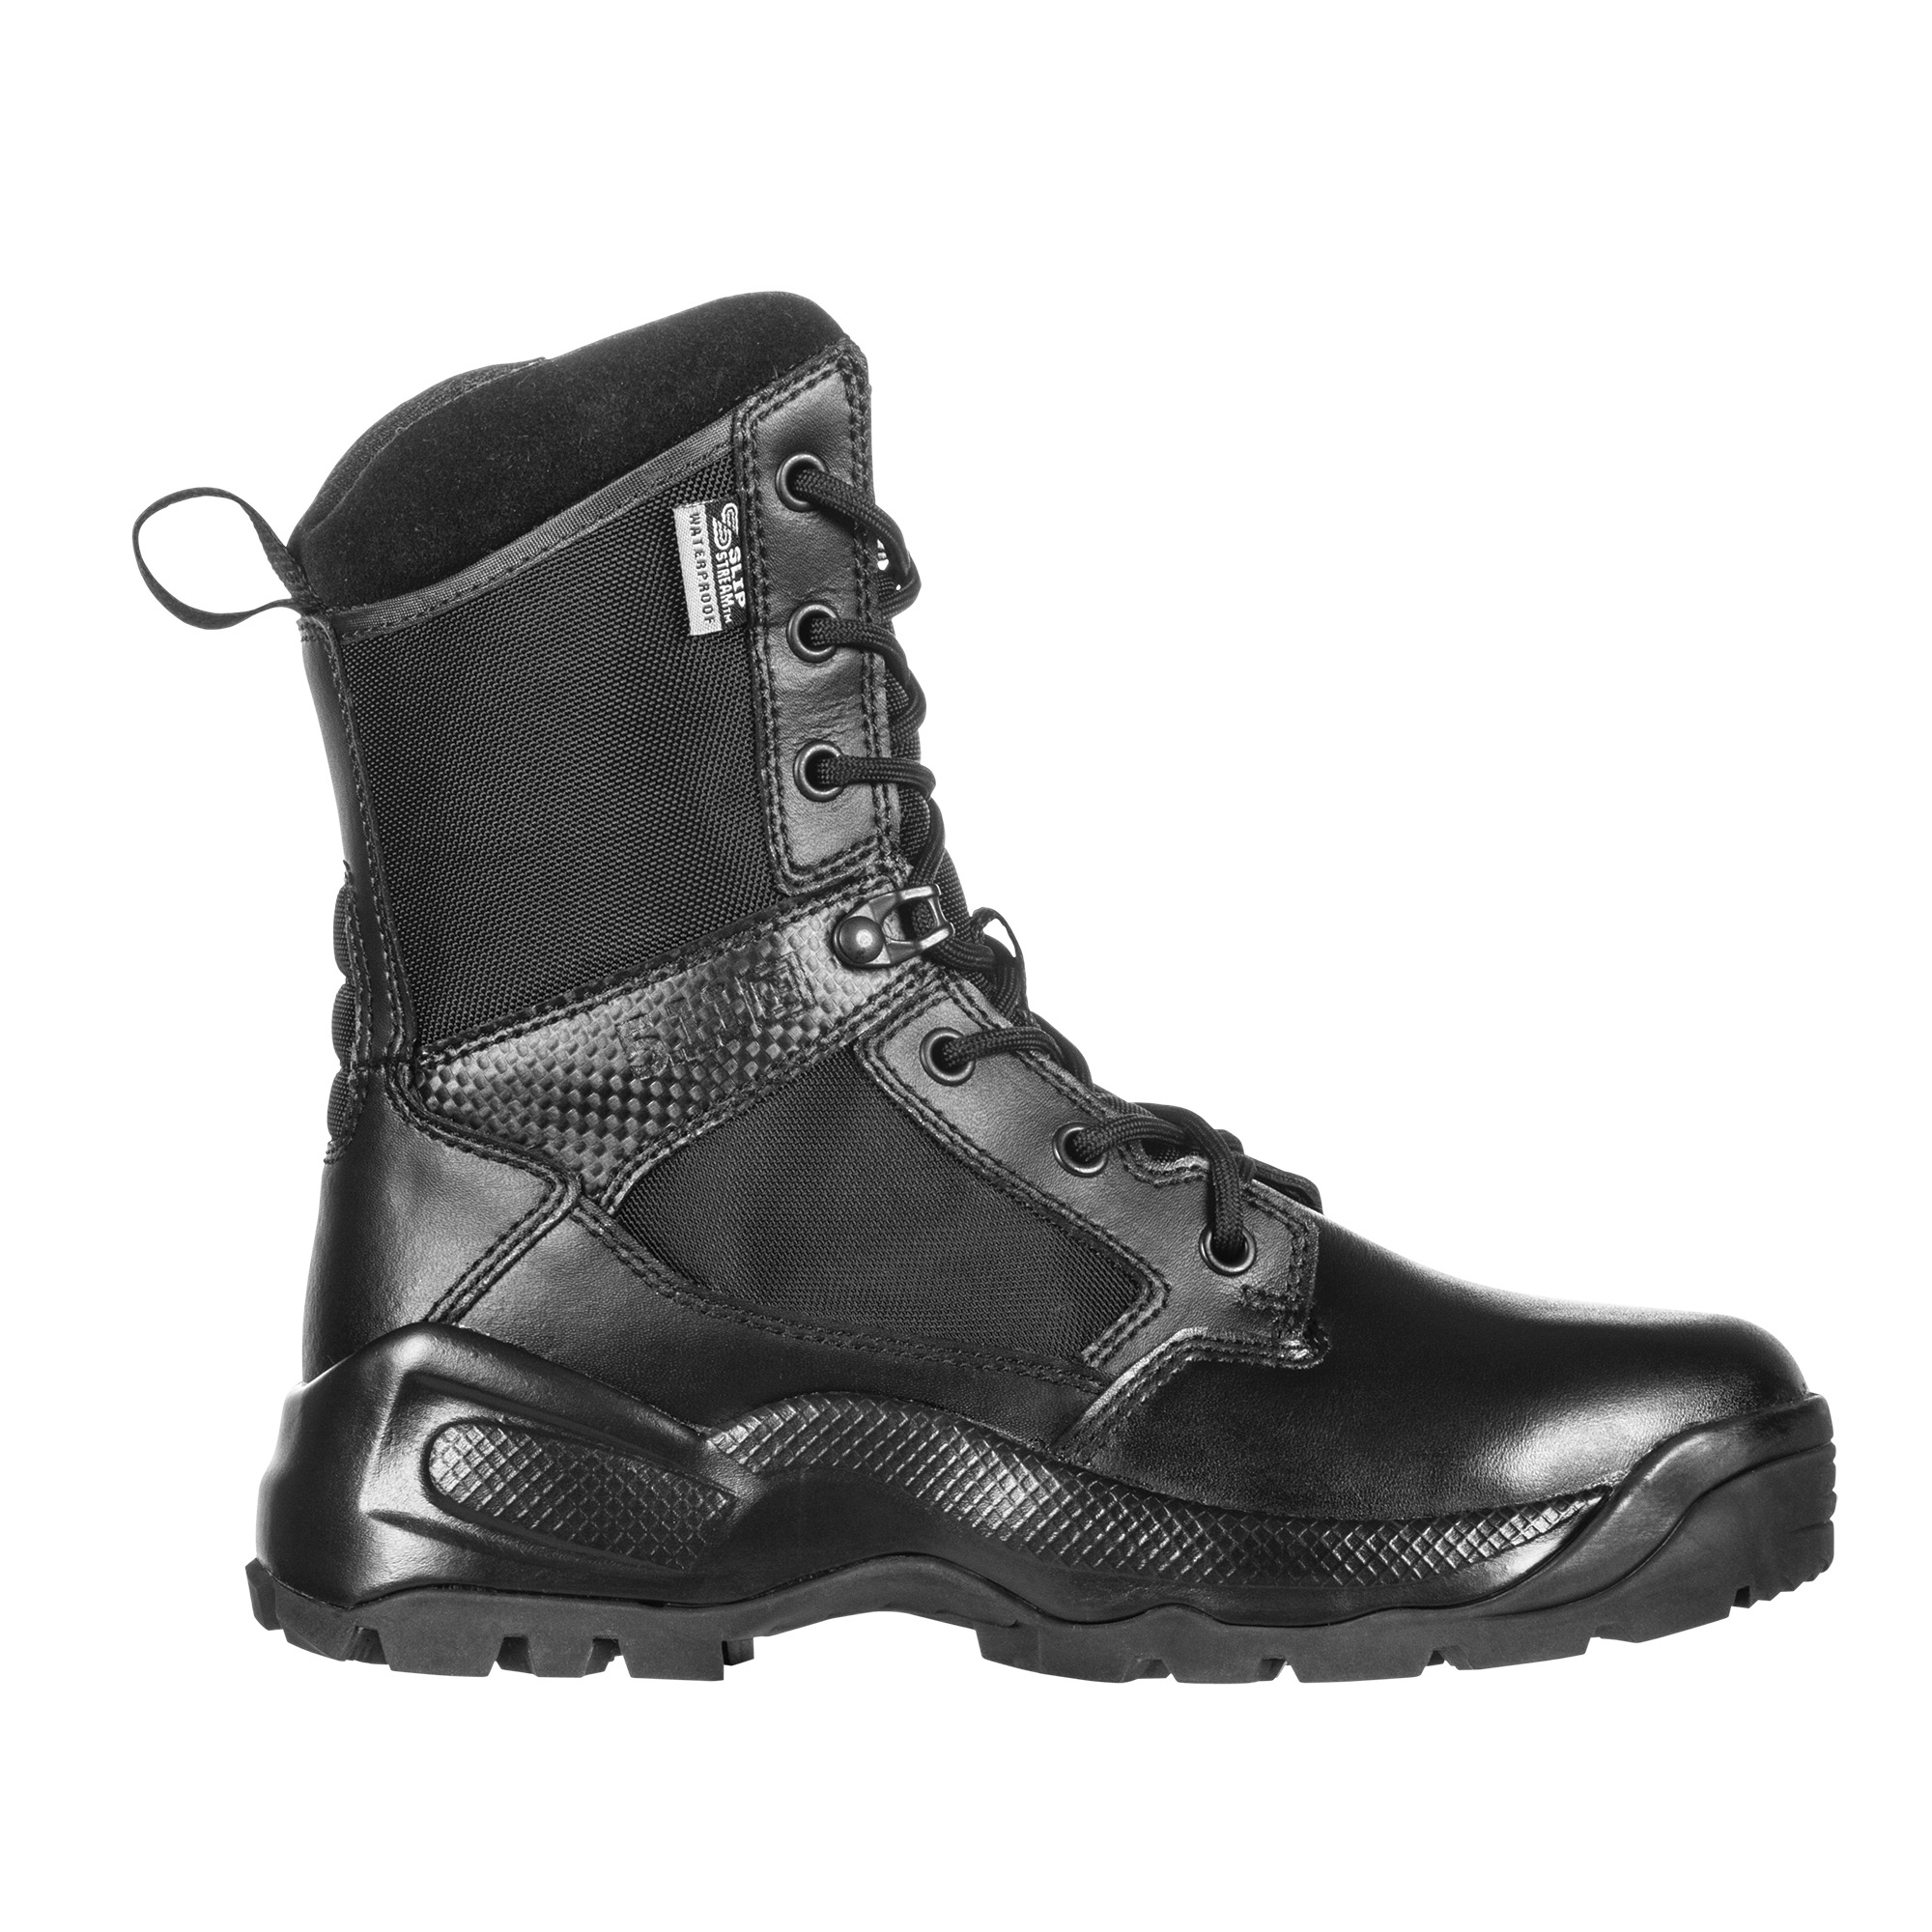 5.11 Tactical Women's Womens ATAC 2.0 8 Storm Boot